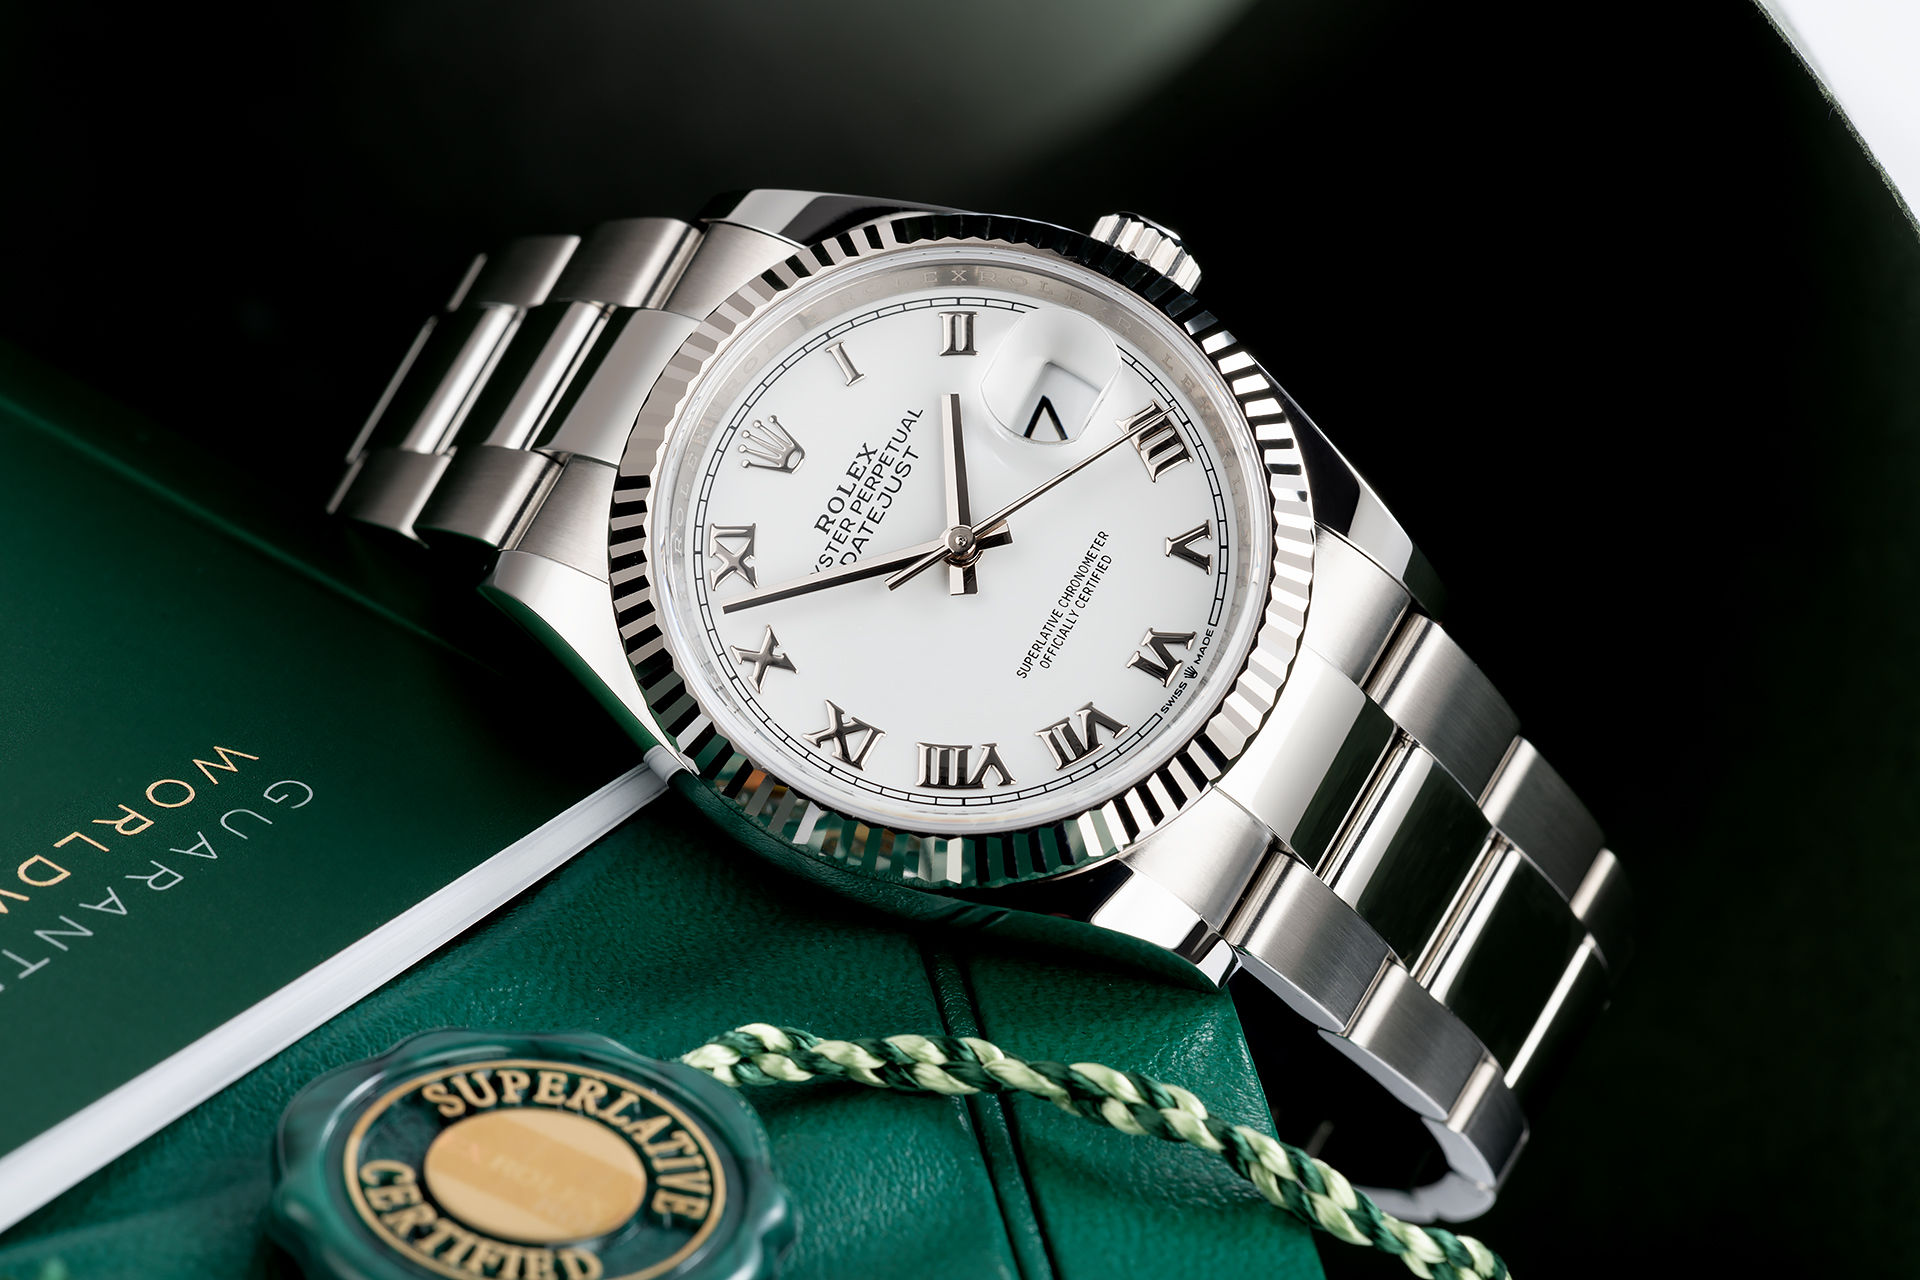 ref 126234 | Rolex Warranty To 2024 | Rolex Datejust 36